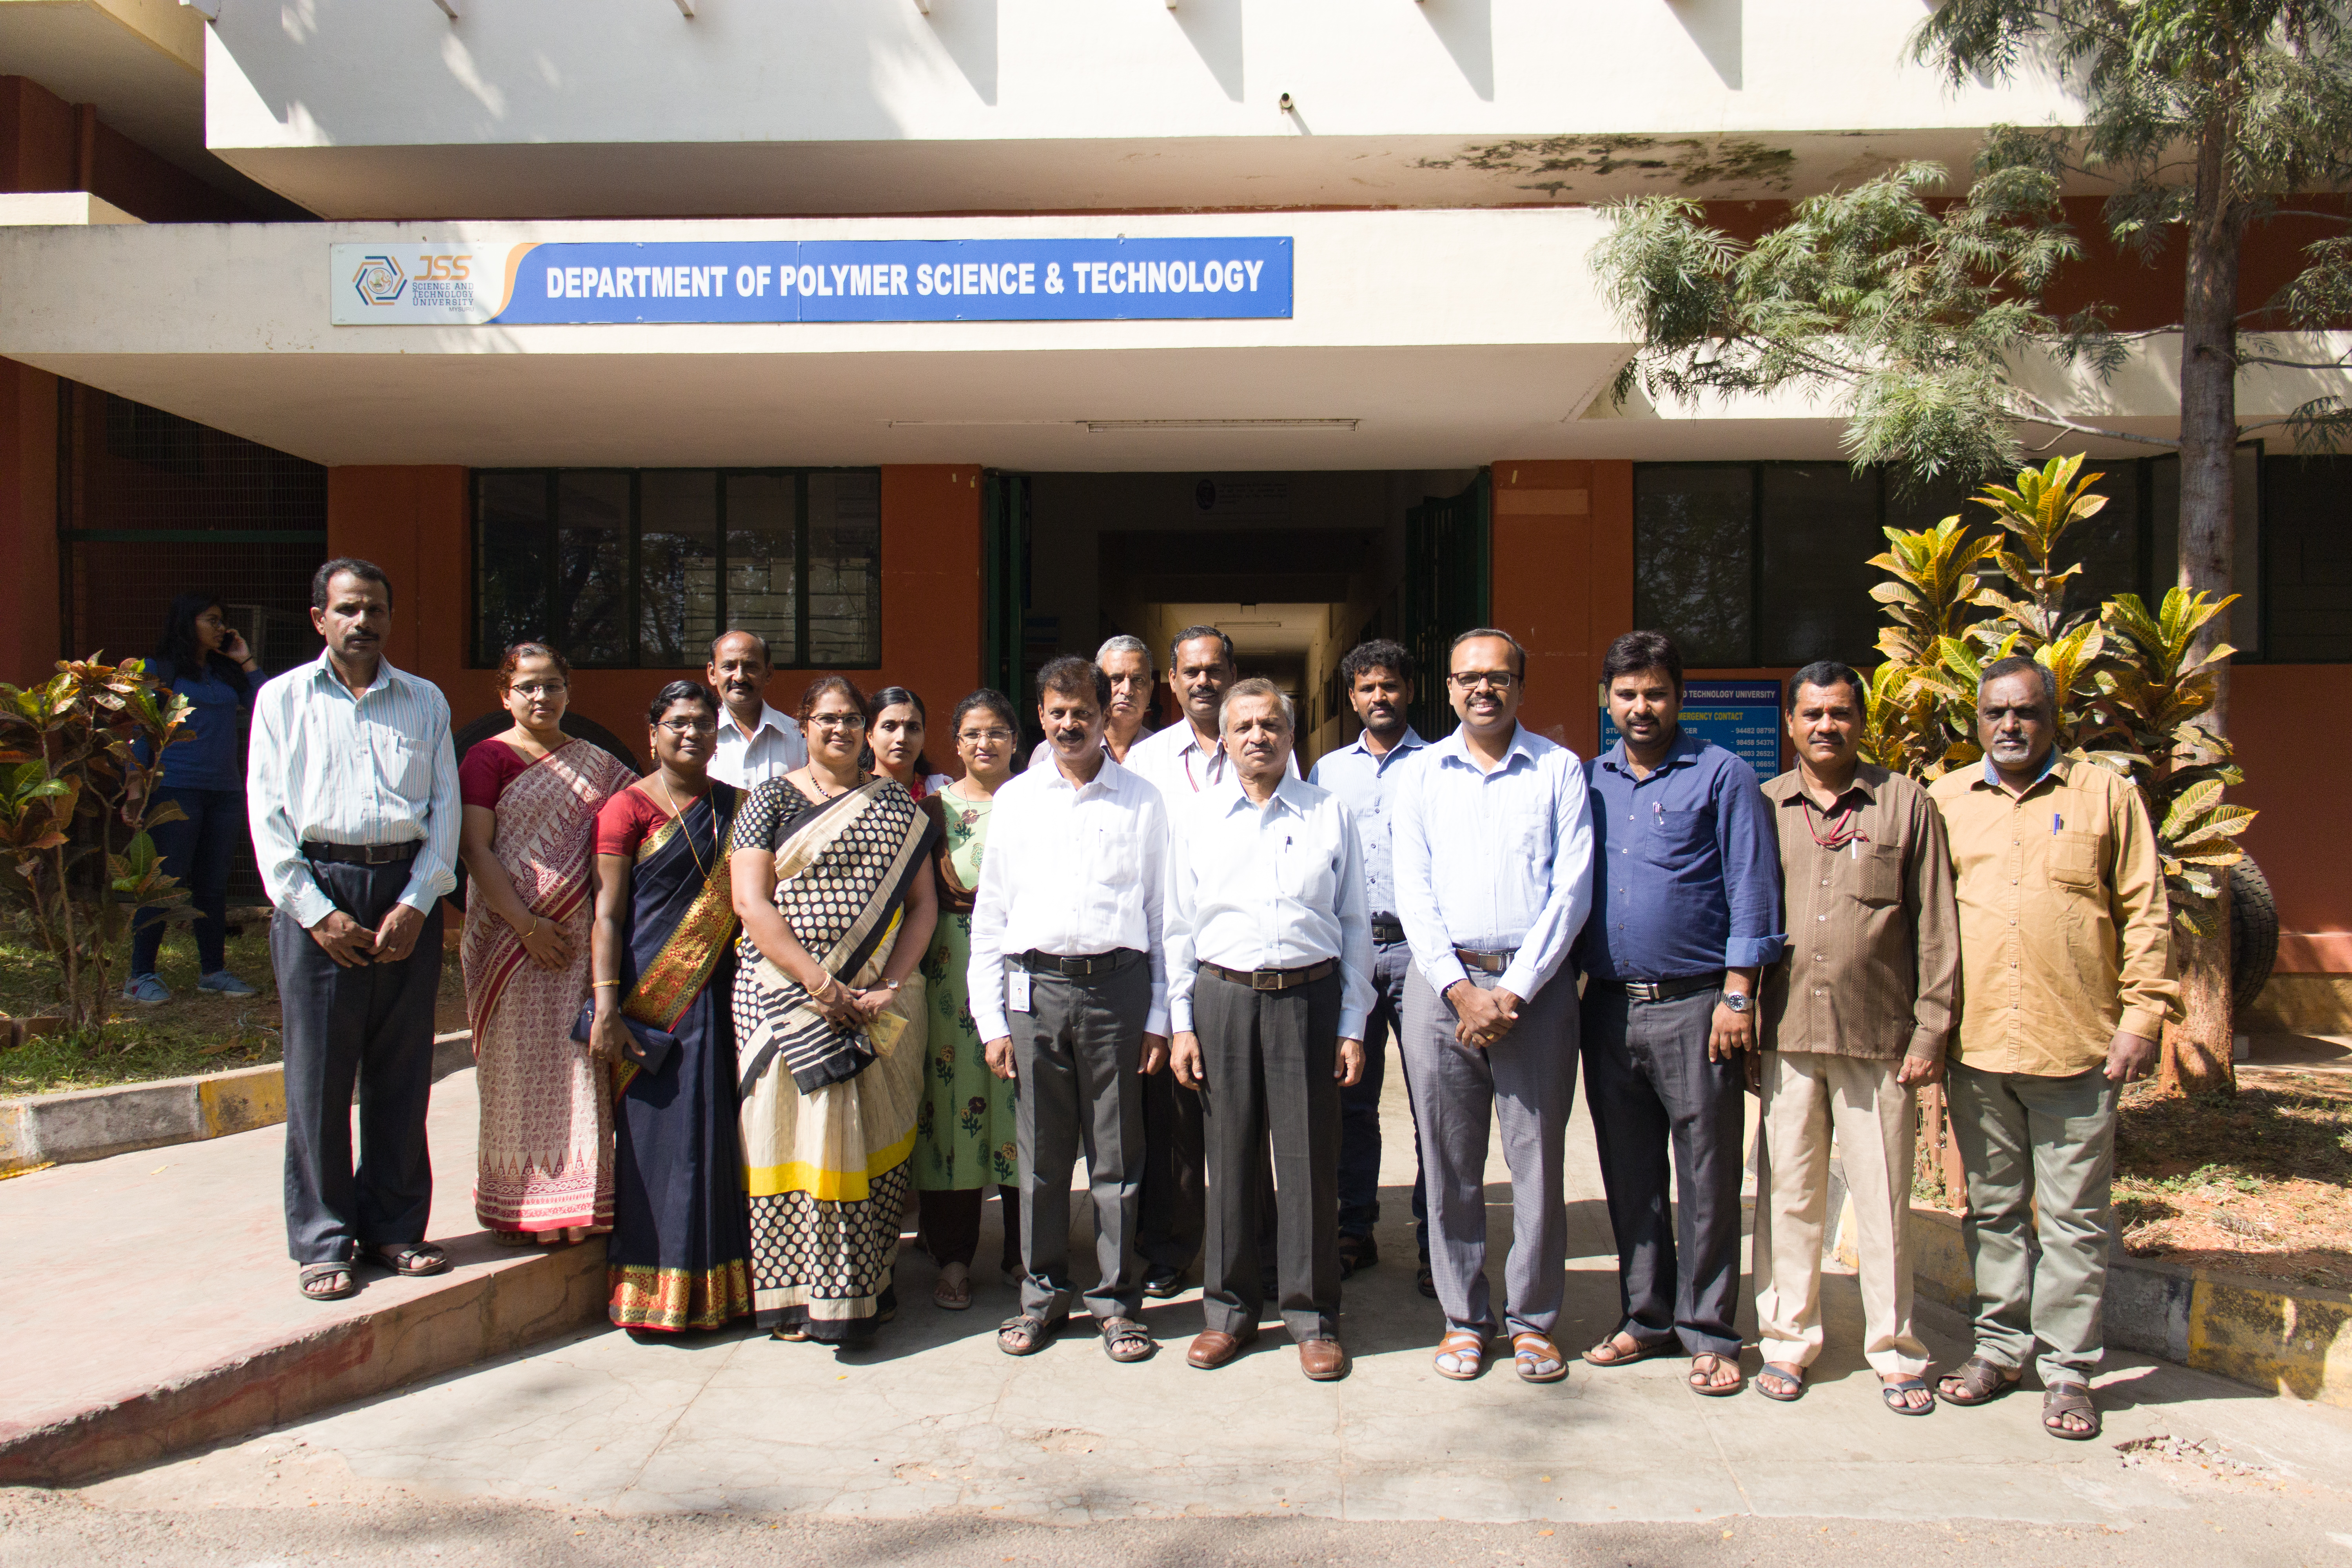 Dept. of Polymer Science and Technology